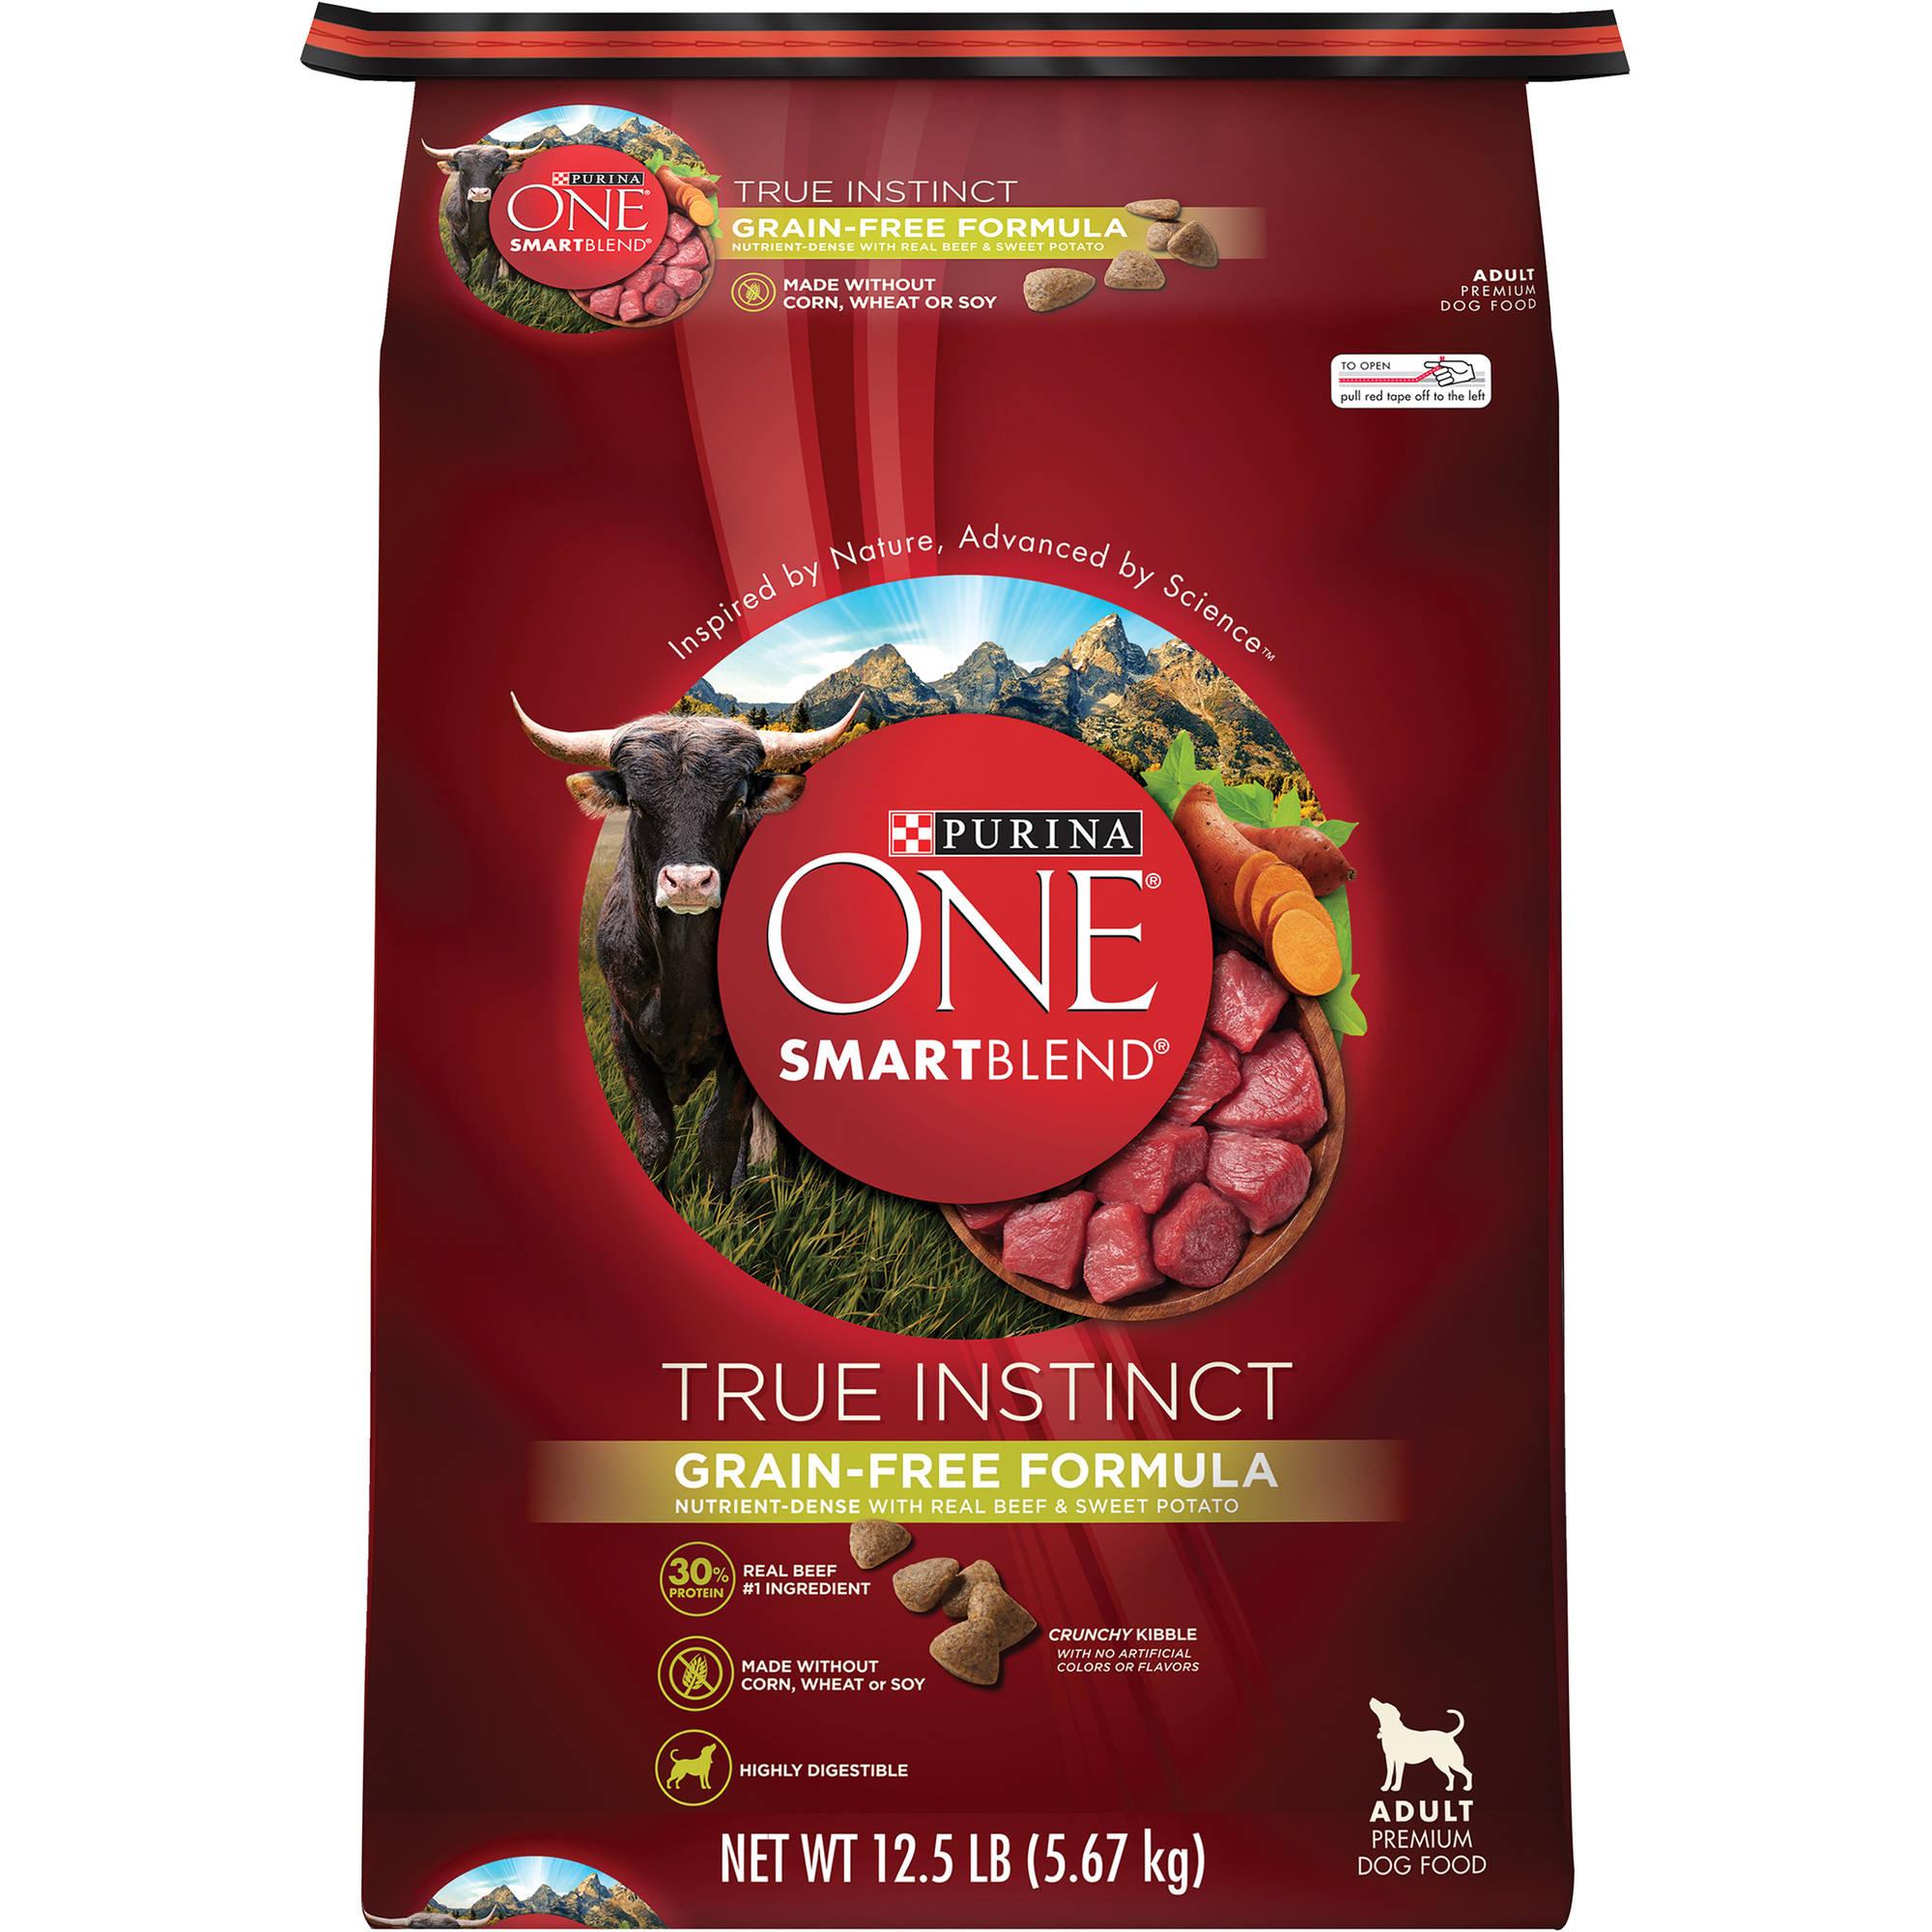 Purina ONE SmartBlend True Instinct Grain-Free Formula with Real Beef & Sweet Potato Dog Food 12.5 lb. Bag